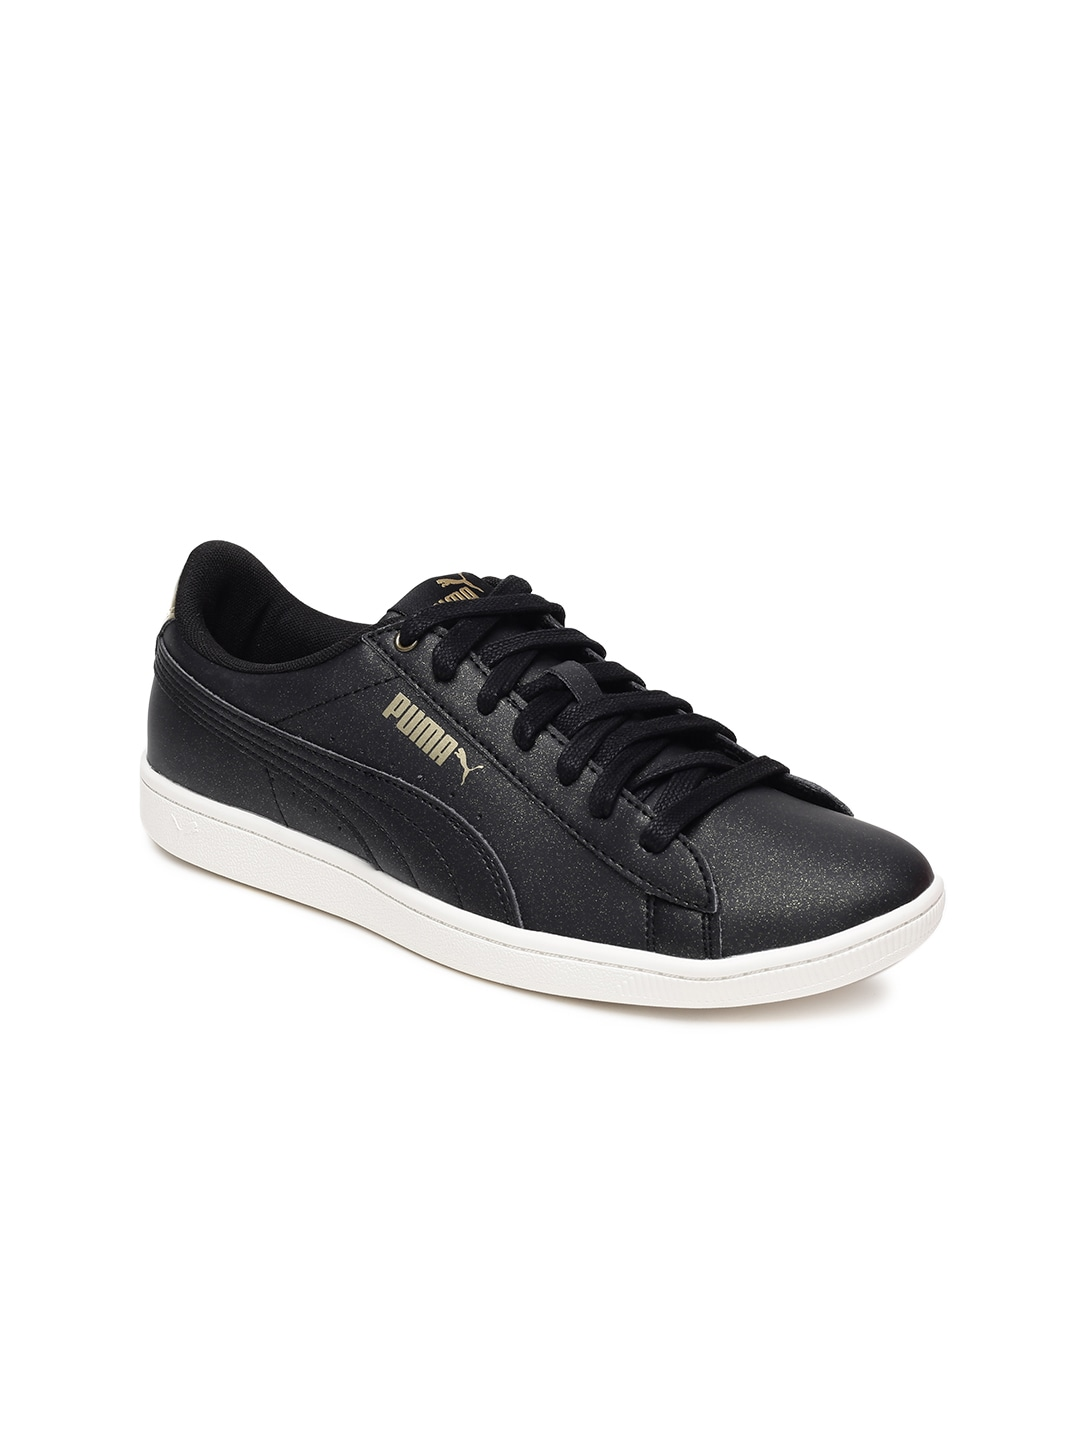 b484c07ec92 Puma Women Shoes - Buy Puma Women Shoes online in India